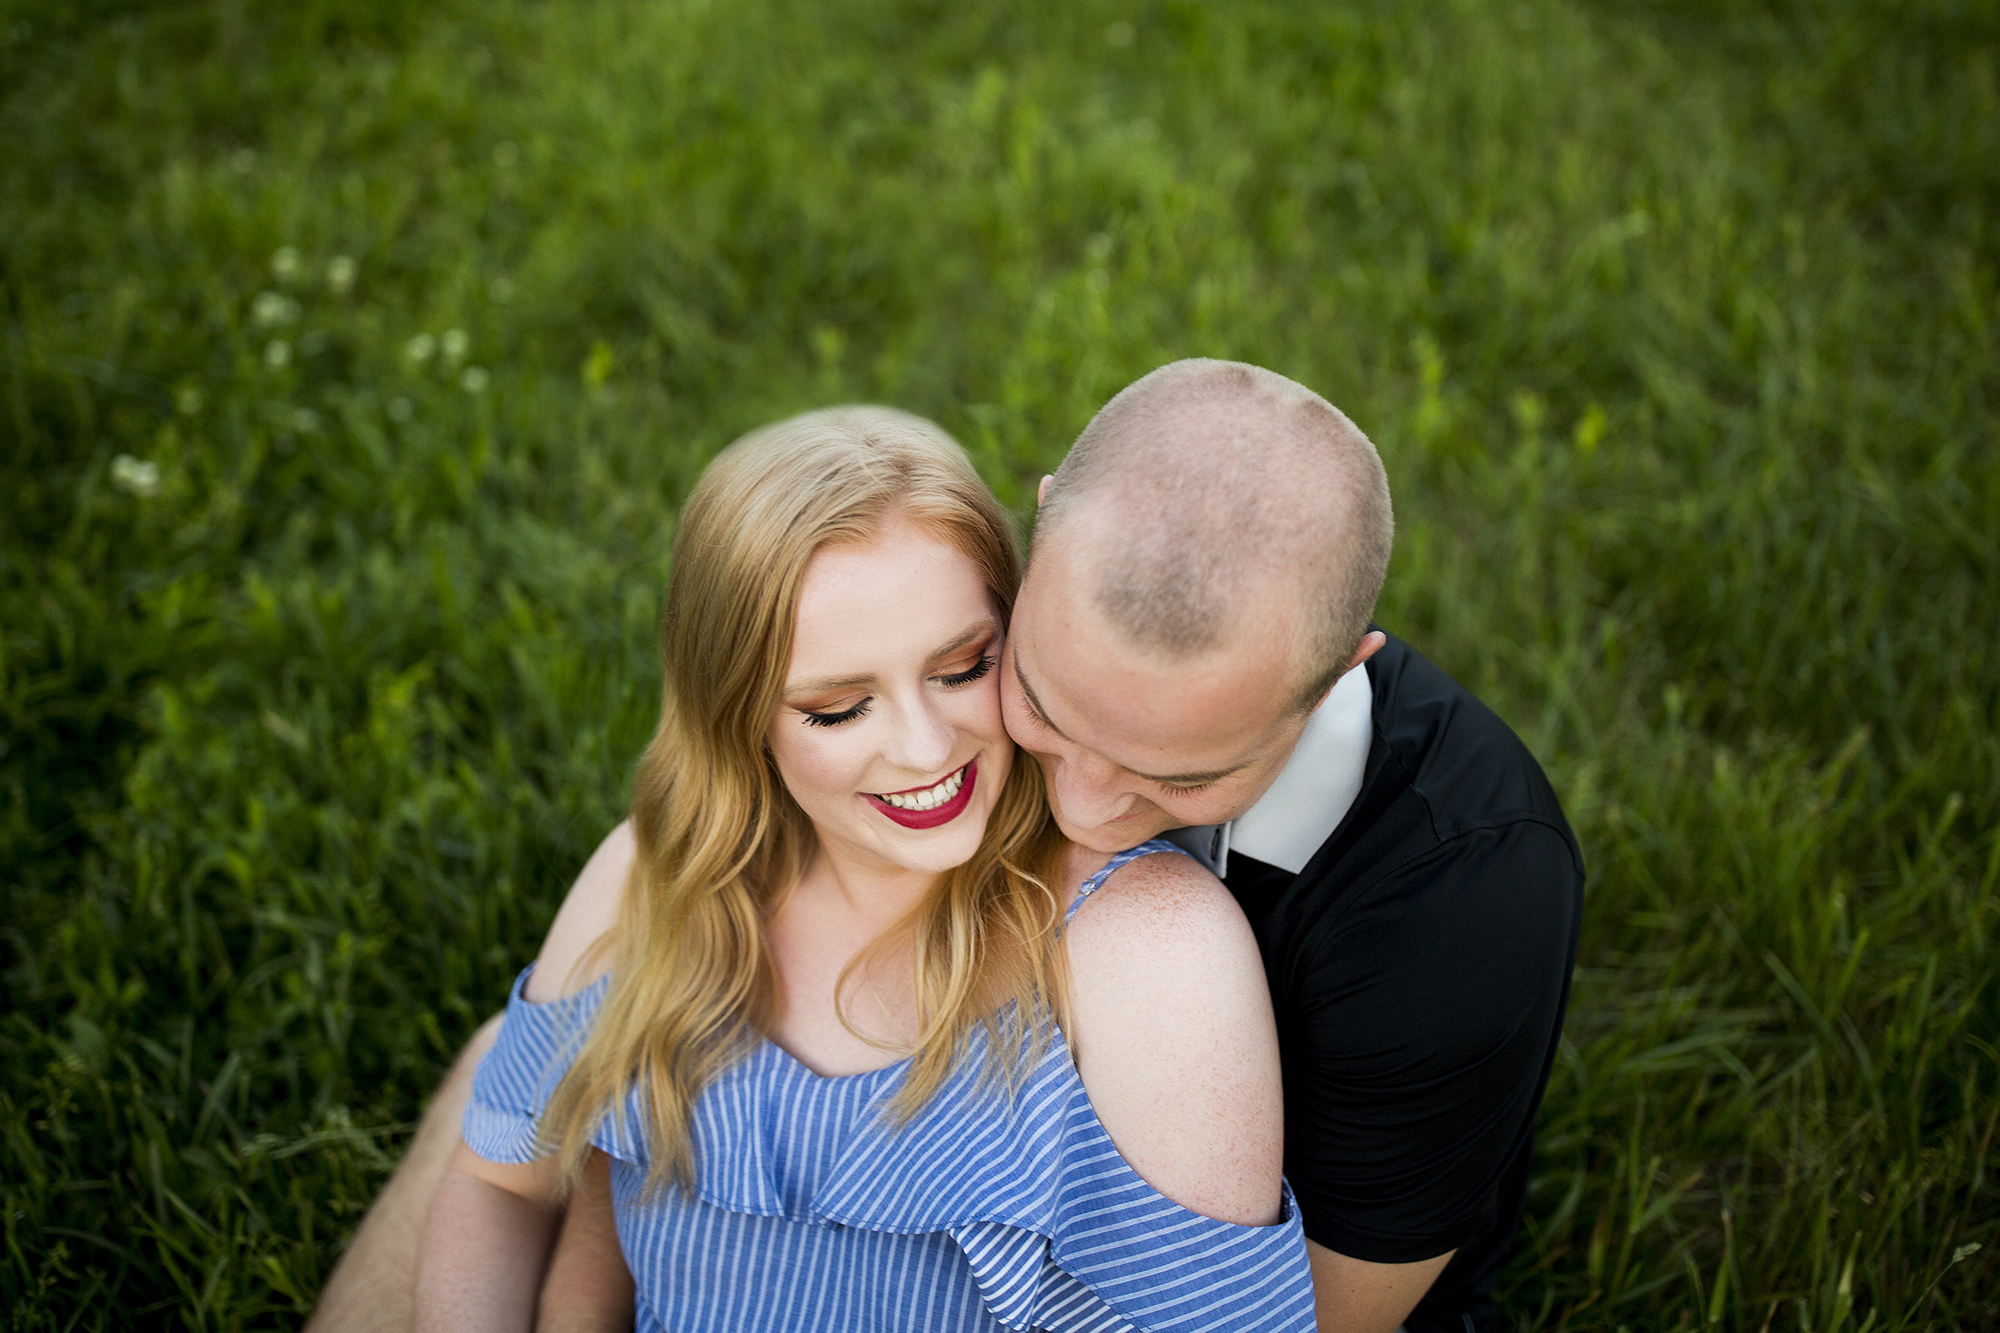 Seriously_Sabrina_Photography_Shakertown_Kentucky_Spring_Engagement_John_MC_32.jpg